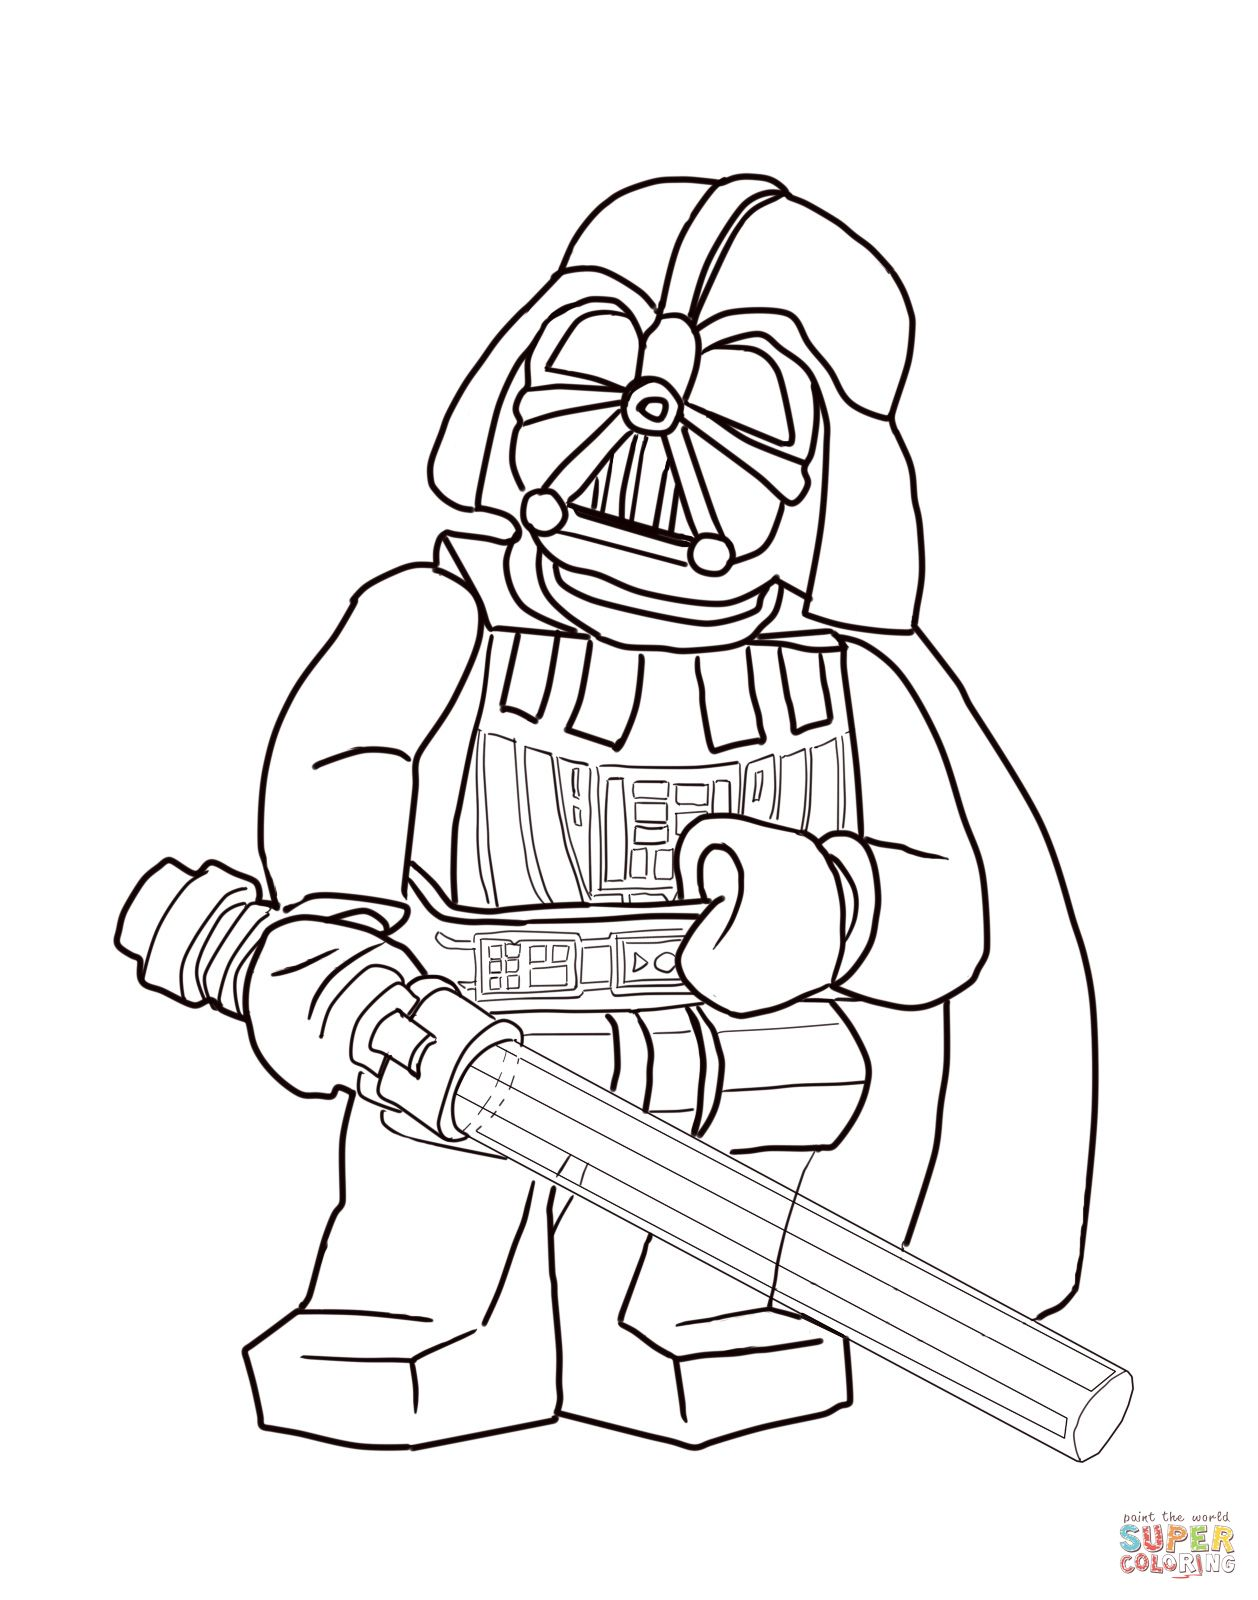 Trends For Lego Star Wars Darth Vader Coloring Pages Star Wars Coloring Sheet Lego Coloring Pages Star Wars Colors